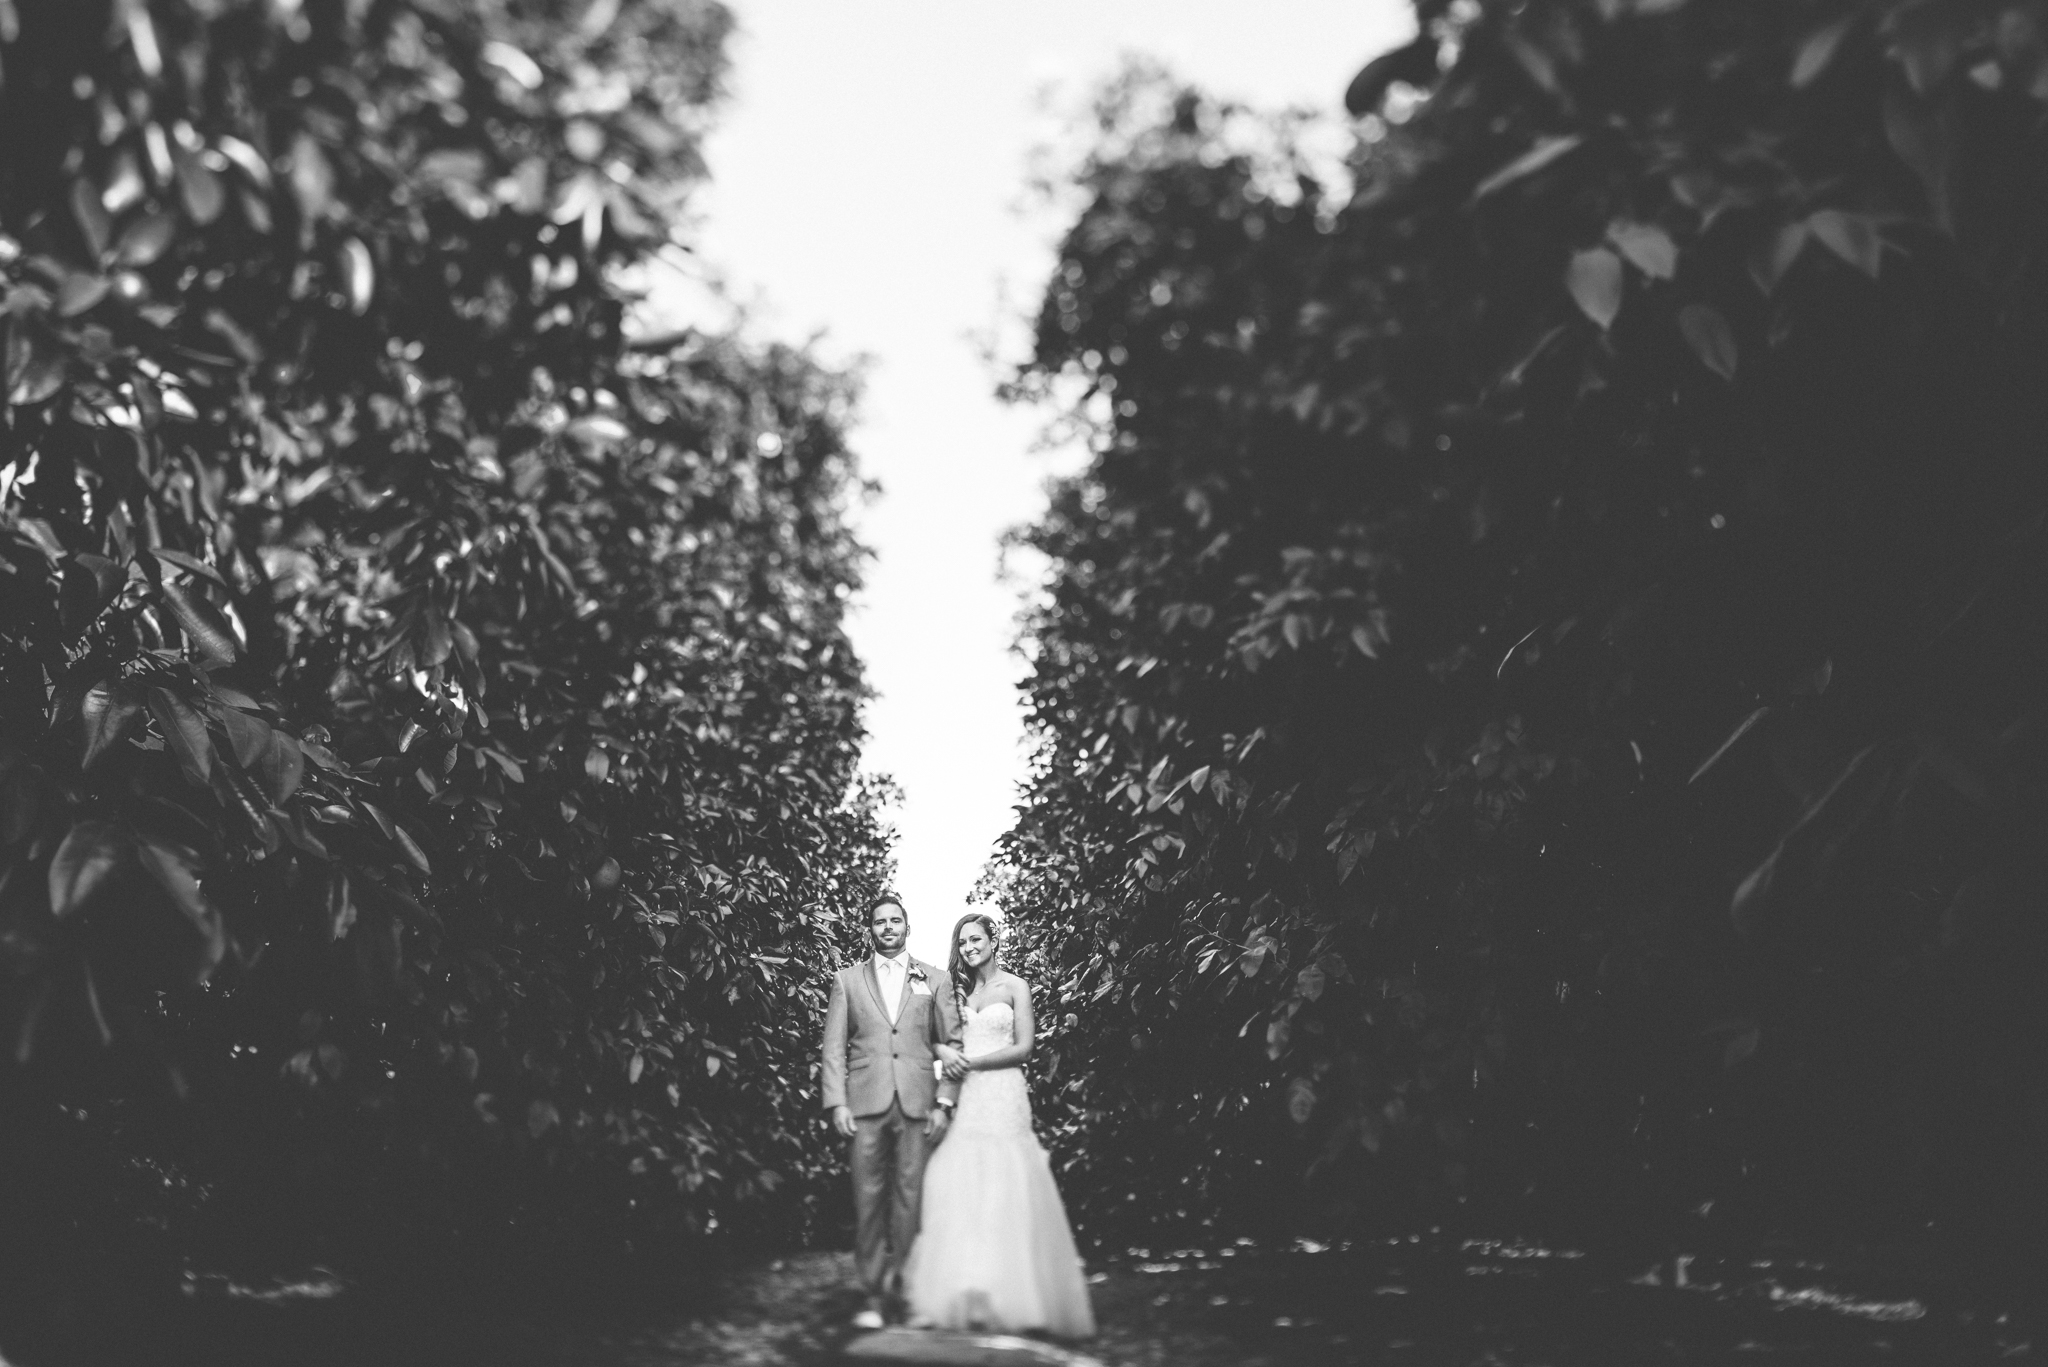 Isaiah & Taylor Photography - Destination Photographers - Temecula Winery Sunset Wedding-4.jpg